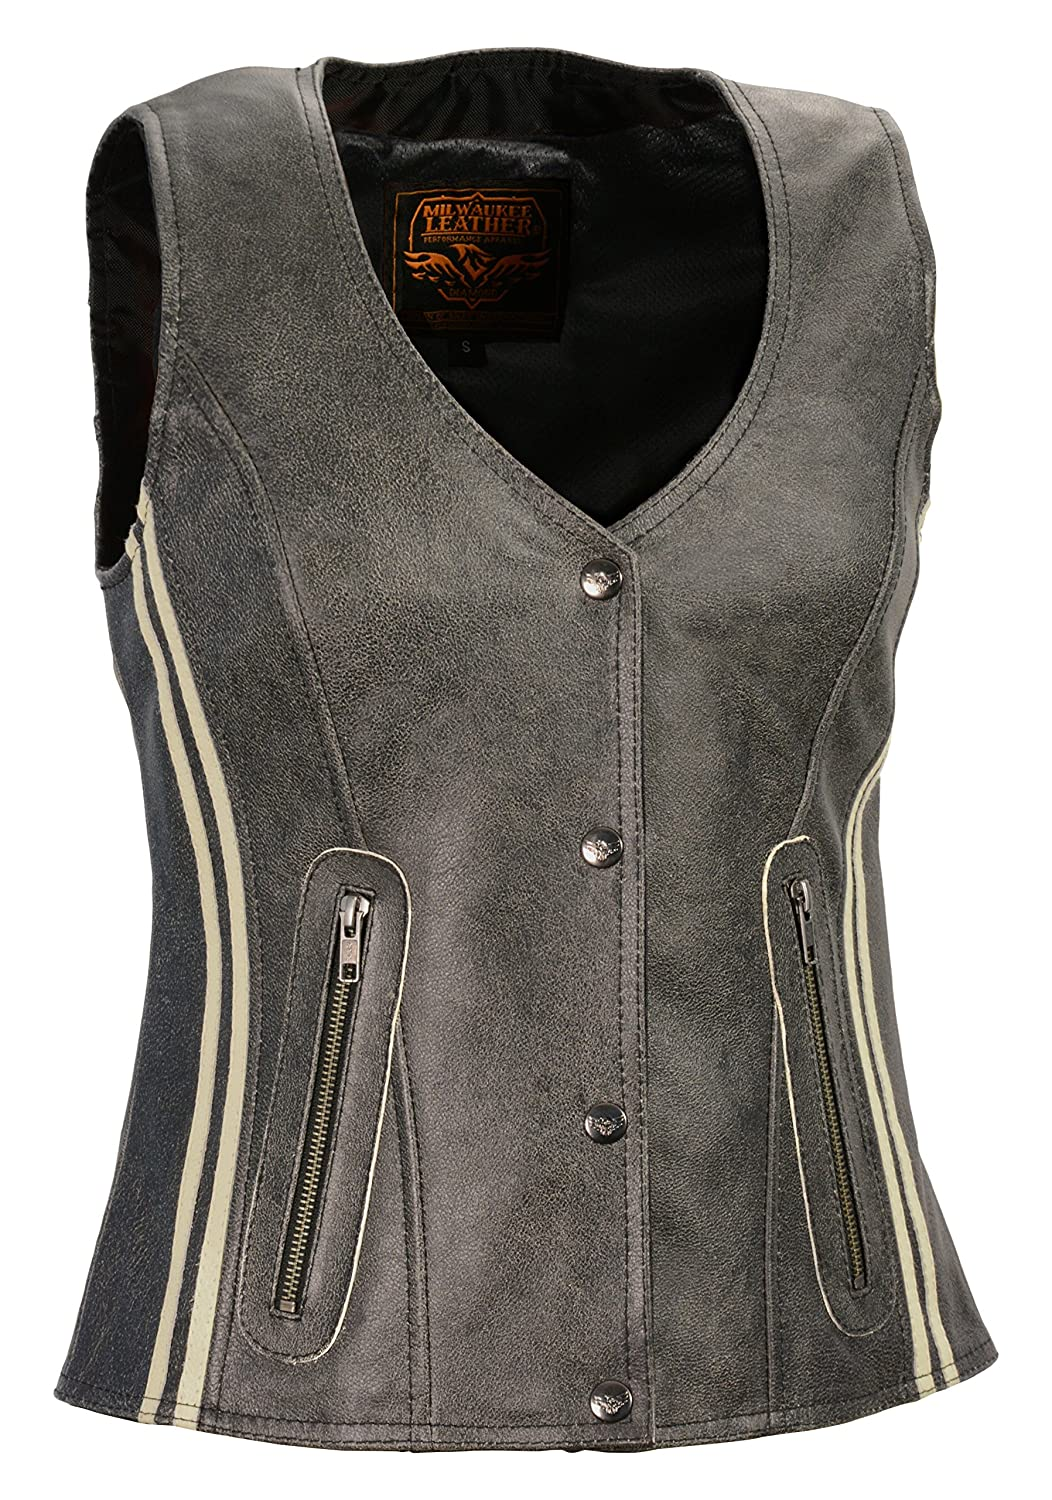 Milwaukee Leather Womens Snap Front Vest with Clear Strip MLL4506-GRY-MD Grey, Medium